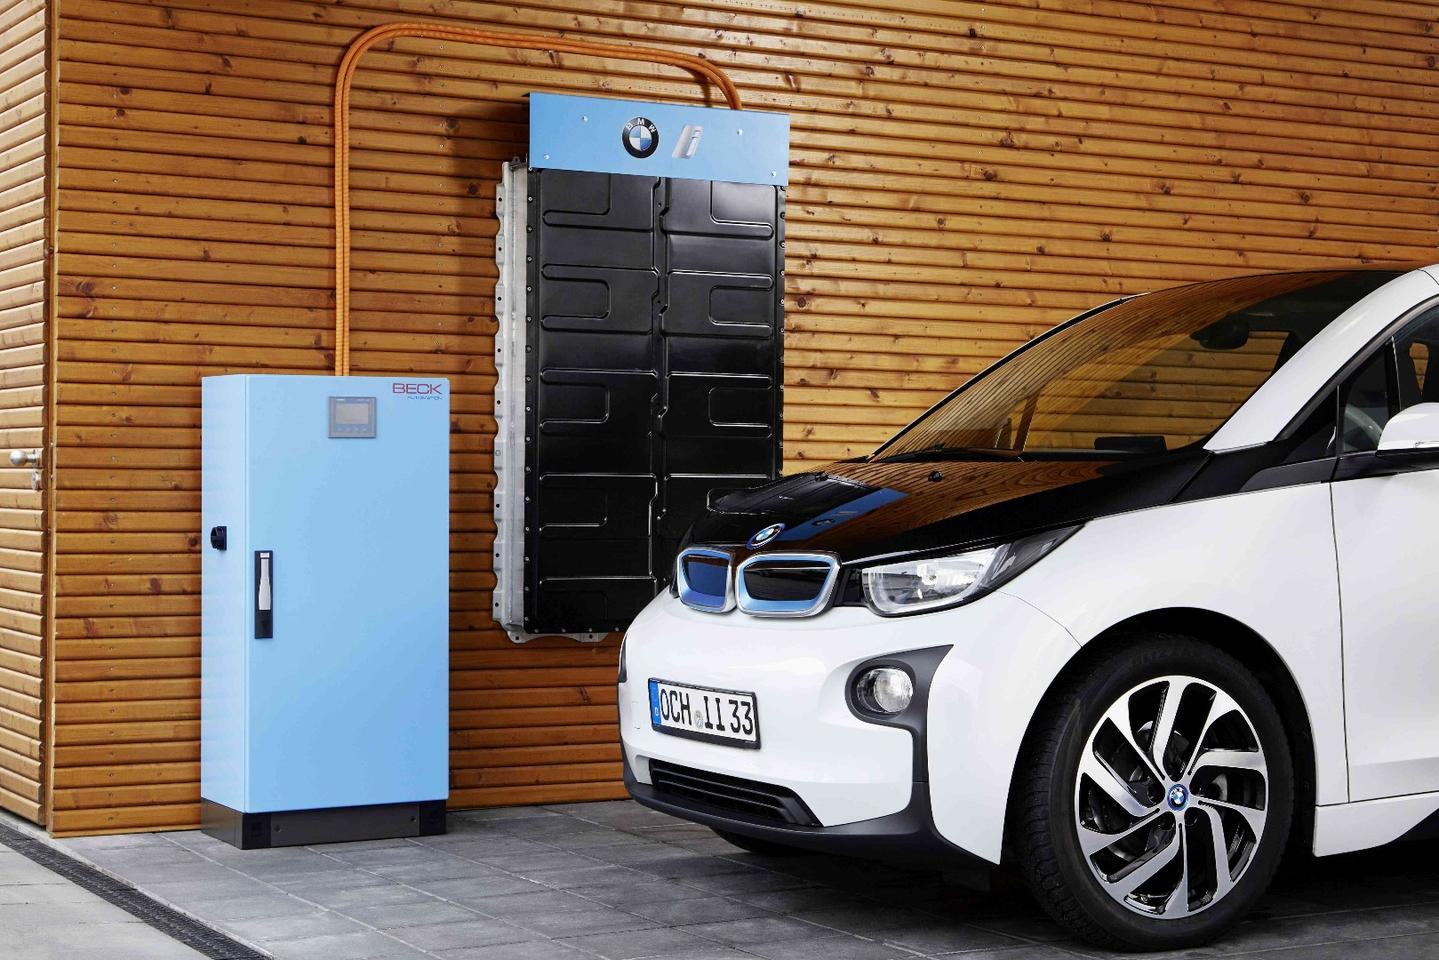 BMW explores an i3 battery pack-based home energy storage system